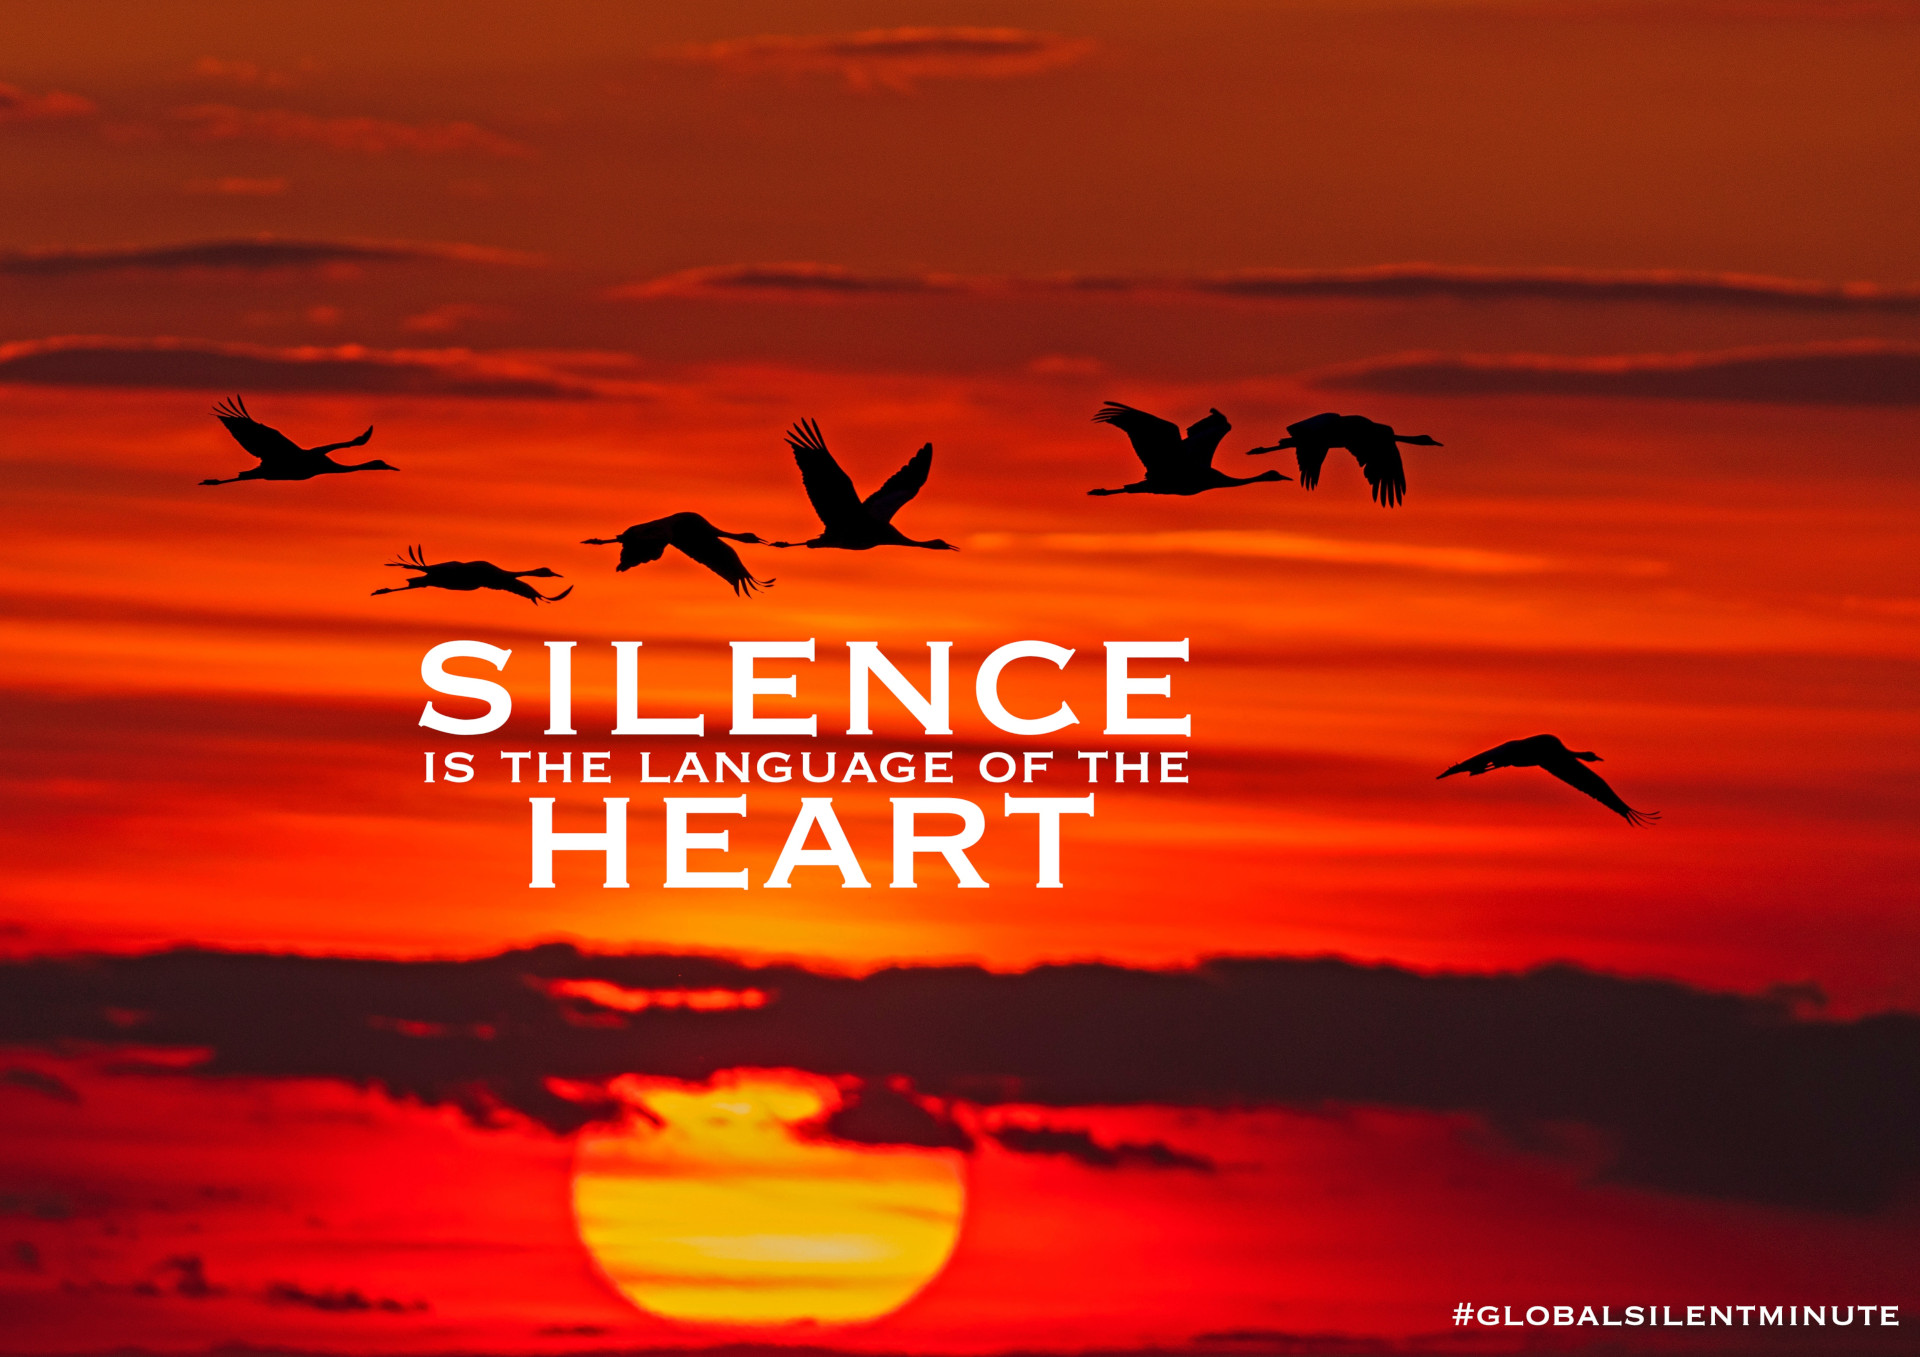 6.Silence is the language of the Heart